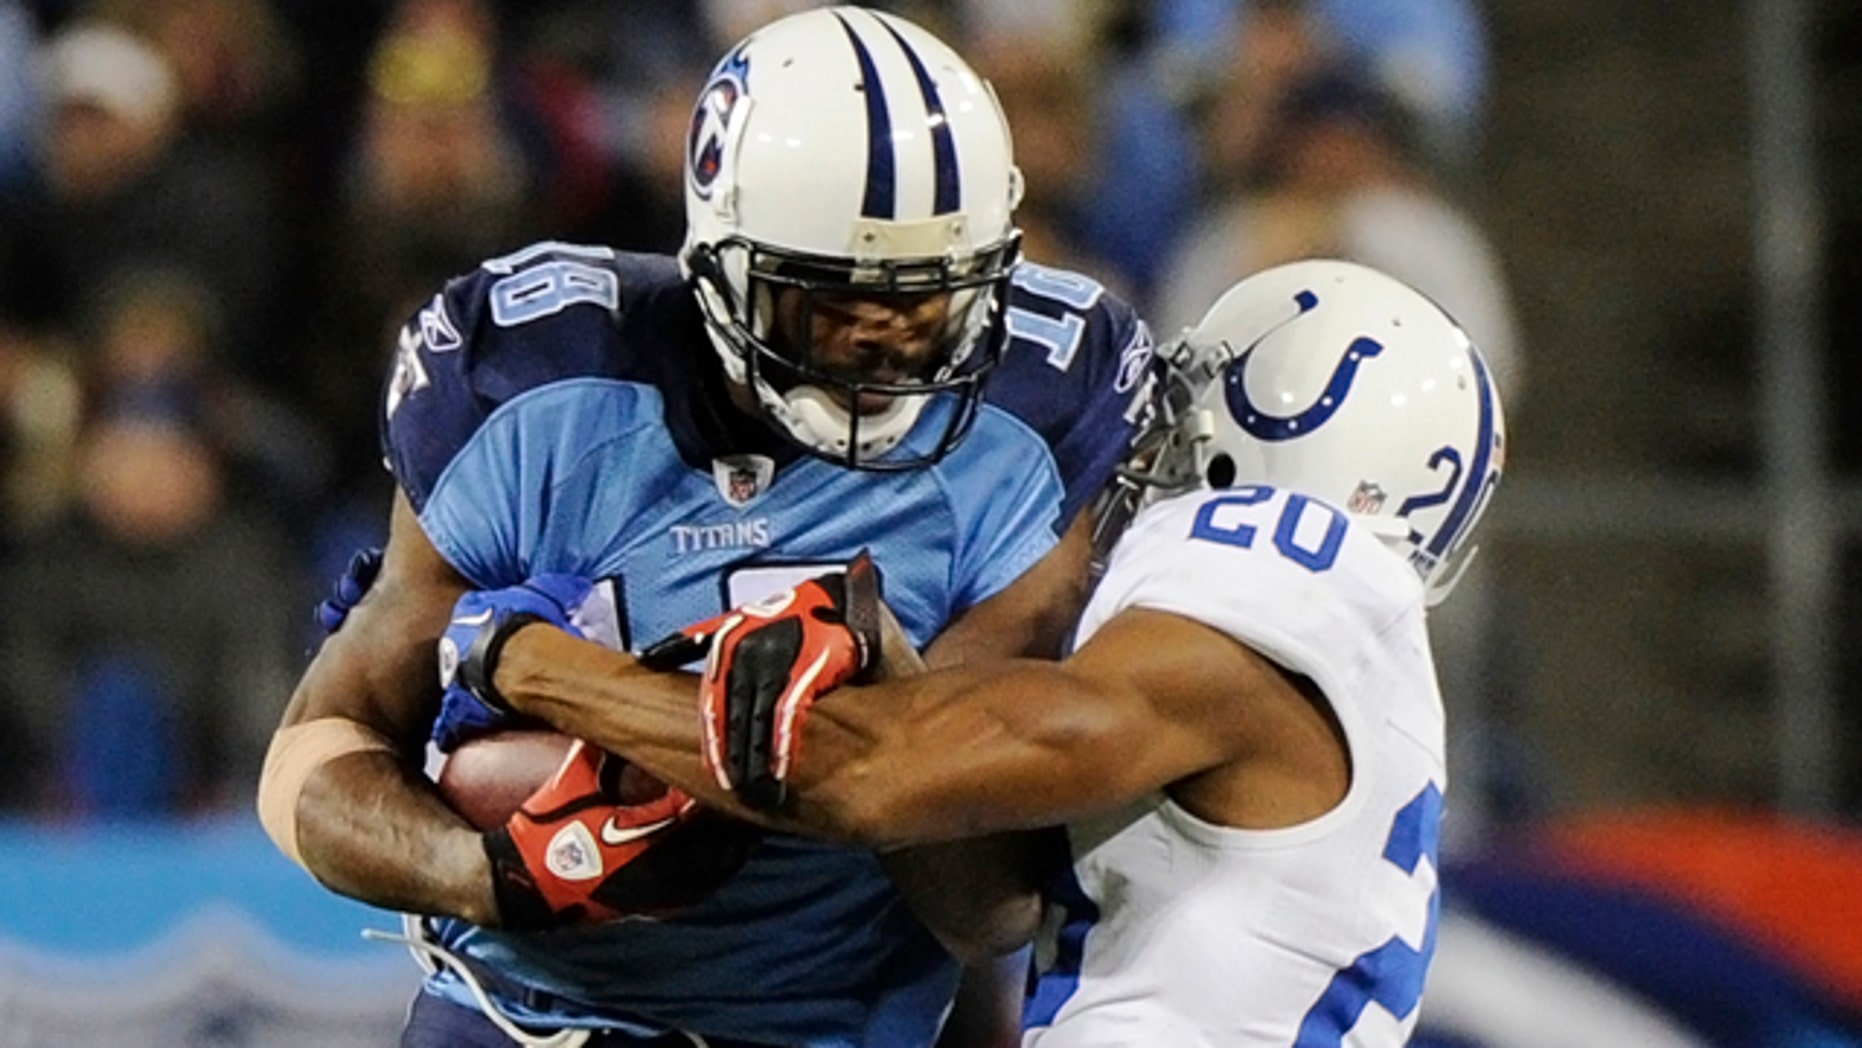 Tennessee Titans wide receiver Kenny Britt (18) hangs on to a pass as he is hit by Indianapolis Colts cornerback Justin Tryon (20) in the first quarter of an NFL football game on Thursday, Dec. 9, 2010, in Nashville, Tenn.